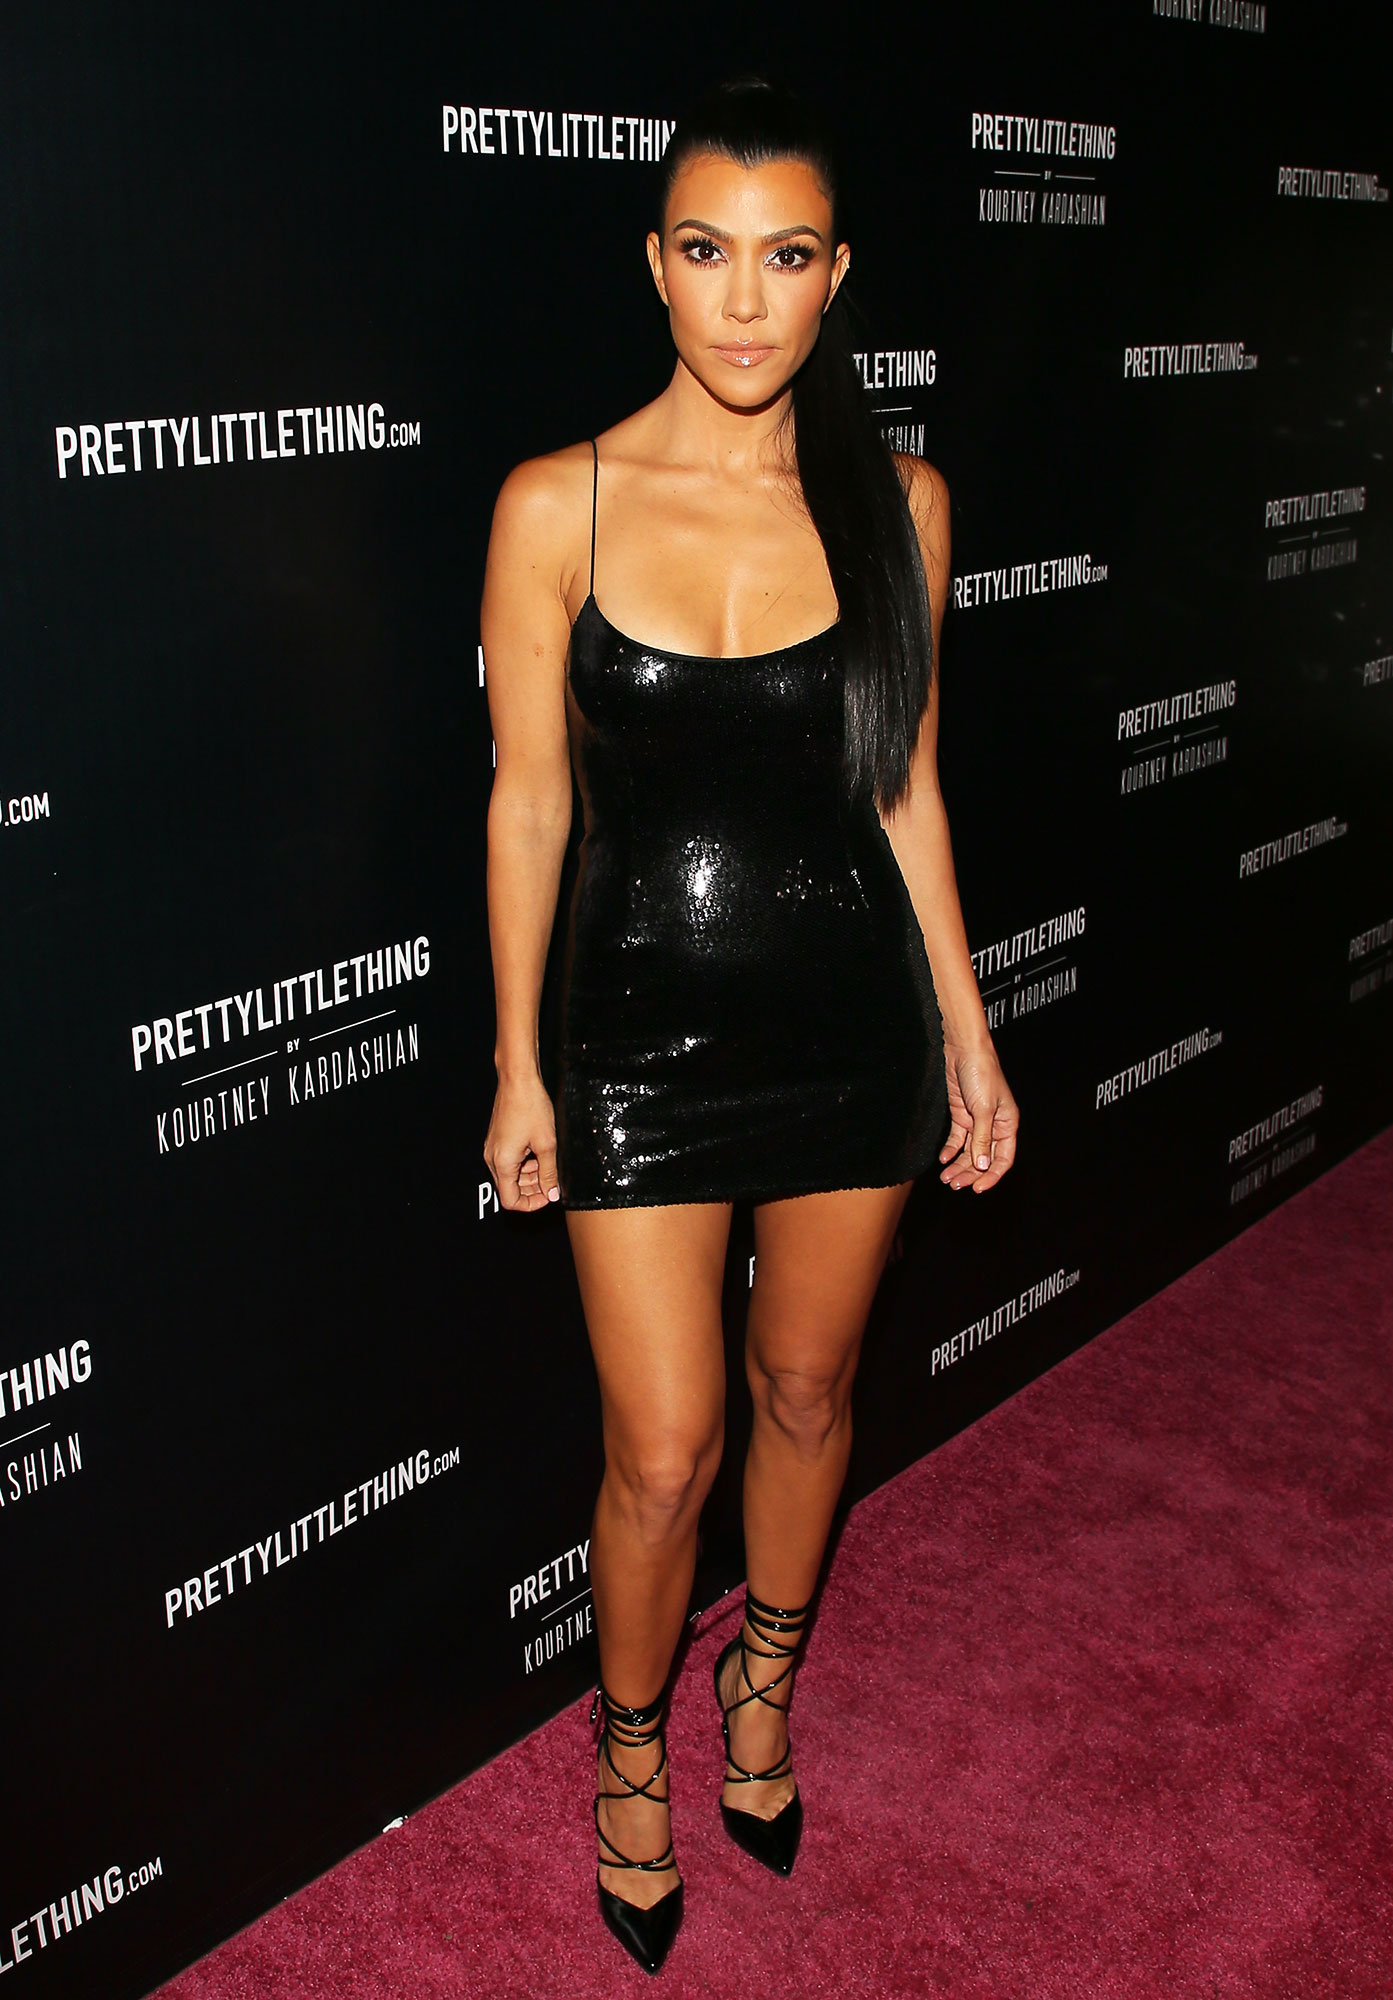 Happy 40th Birthday, Kourtney Kardashian - The brunette beauty showed some leg in a shiny LBD from her PrettyLittleThing collection at a launch event for the collab.